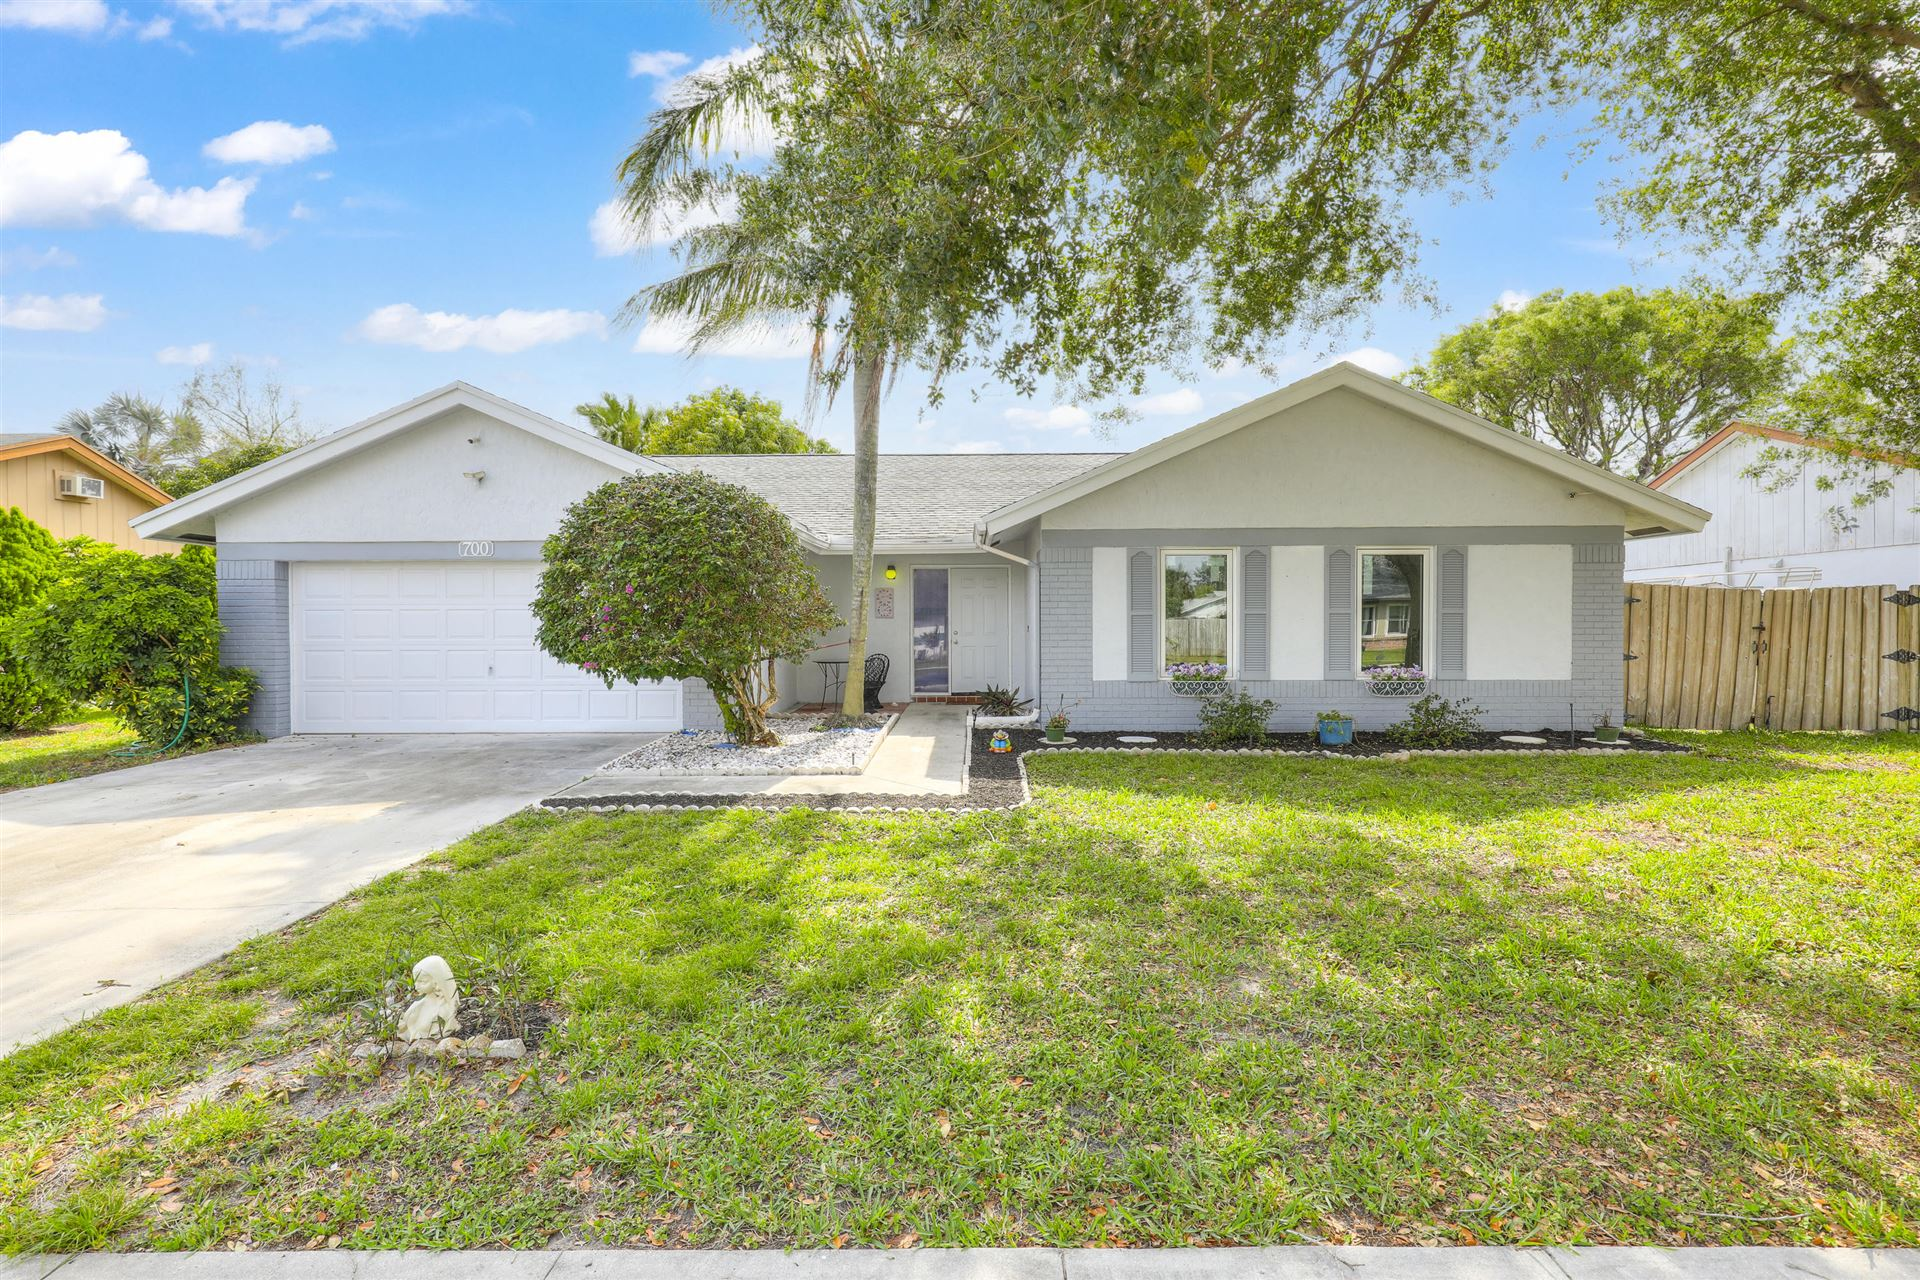 700 NW 10th Court, Boynton Beach, FL 33426 - MLS#: RX-10710120